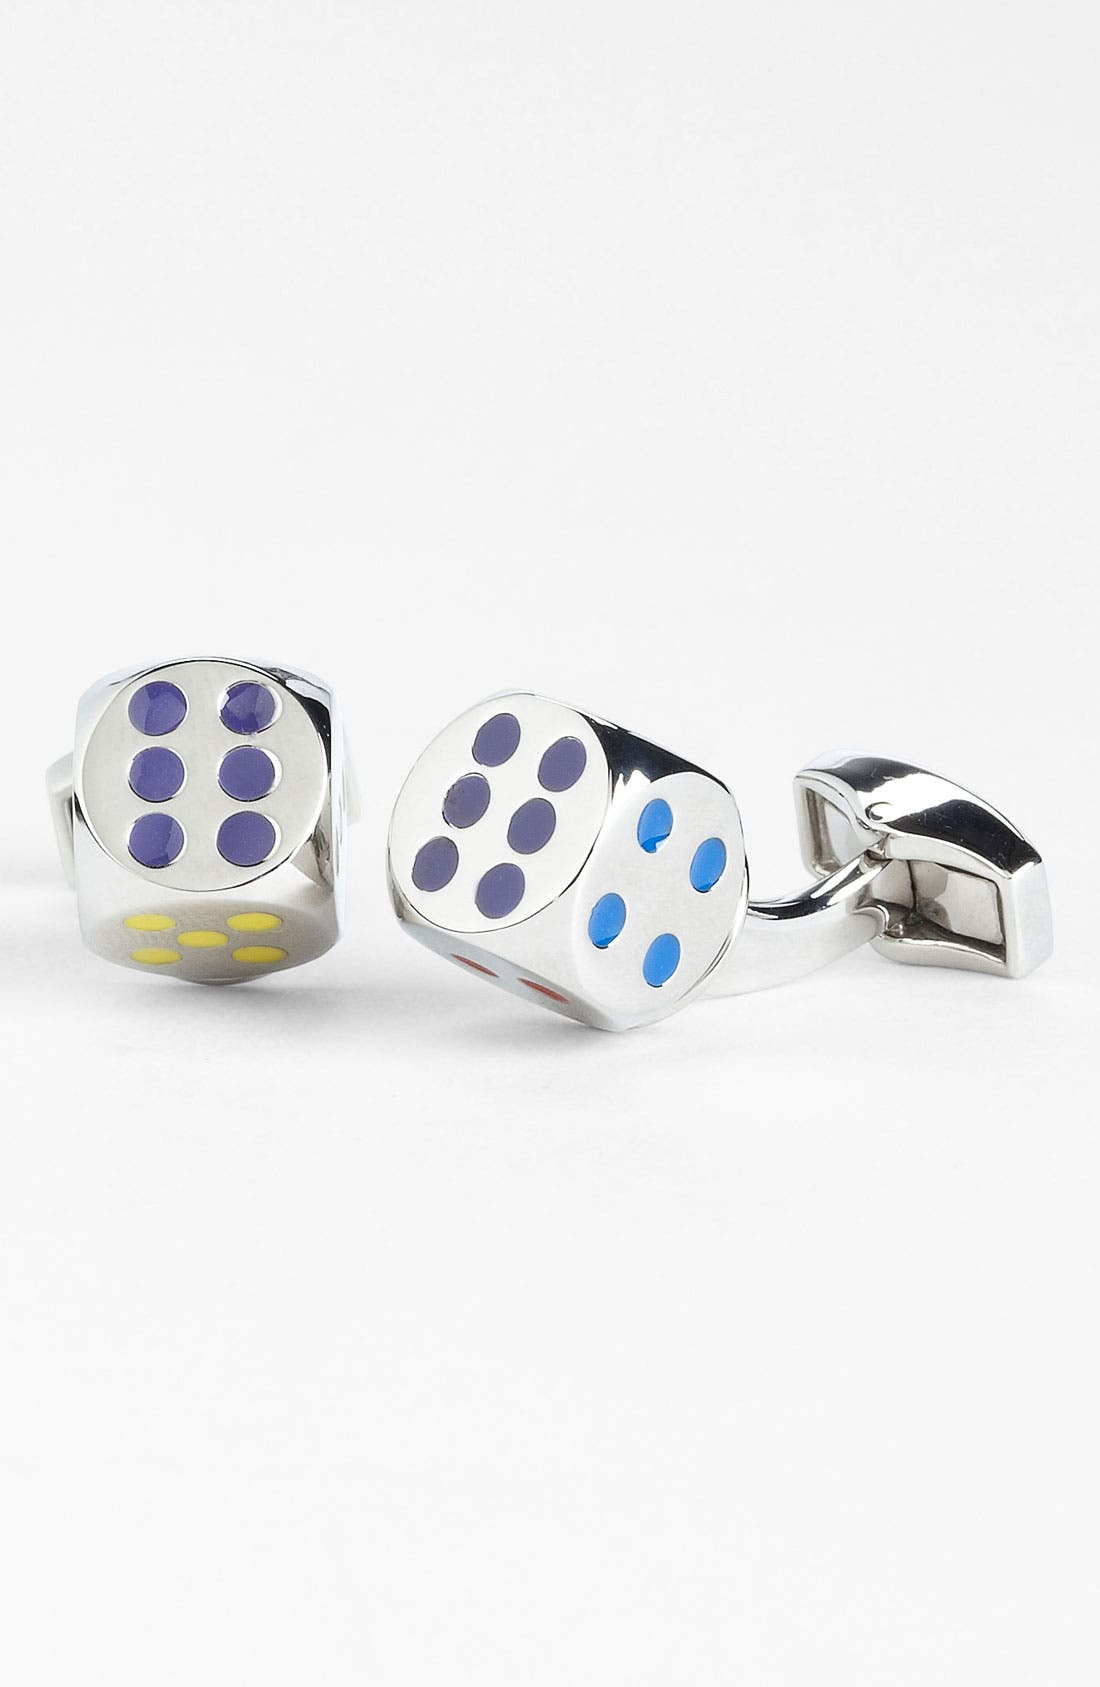 Alternate Image 1 Selected - Tateossian 'Real Dice' Cuff Links